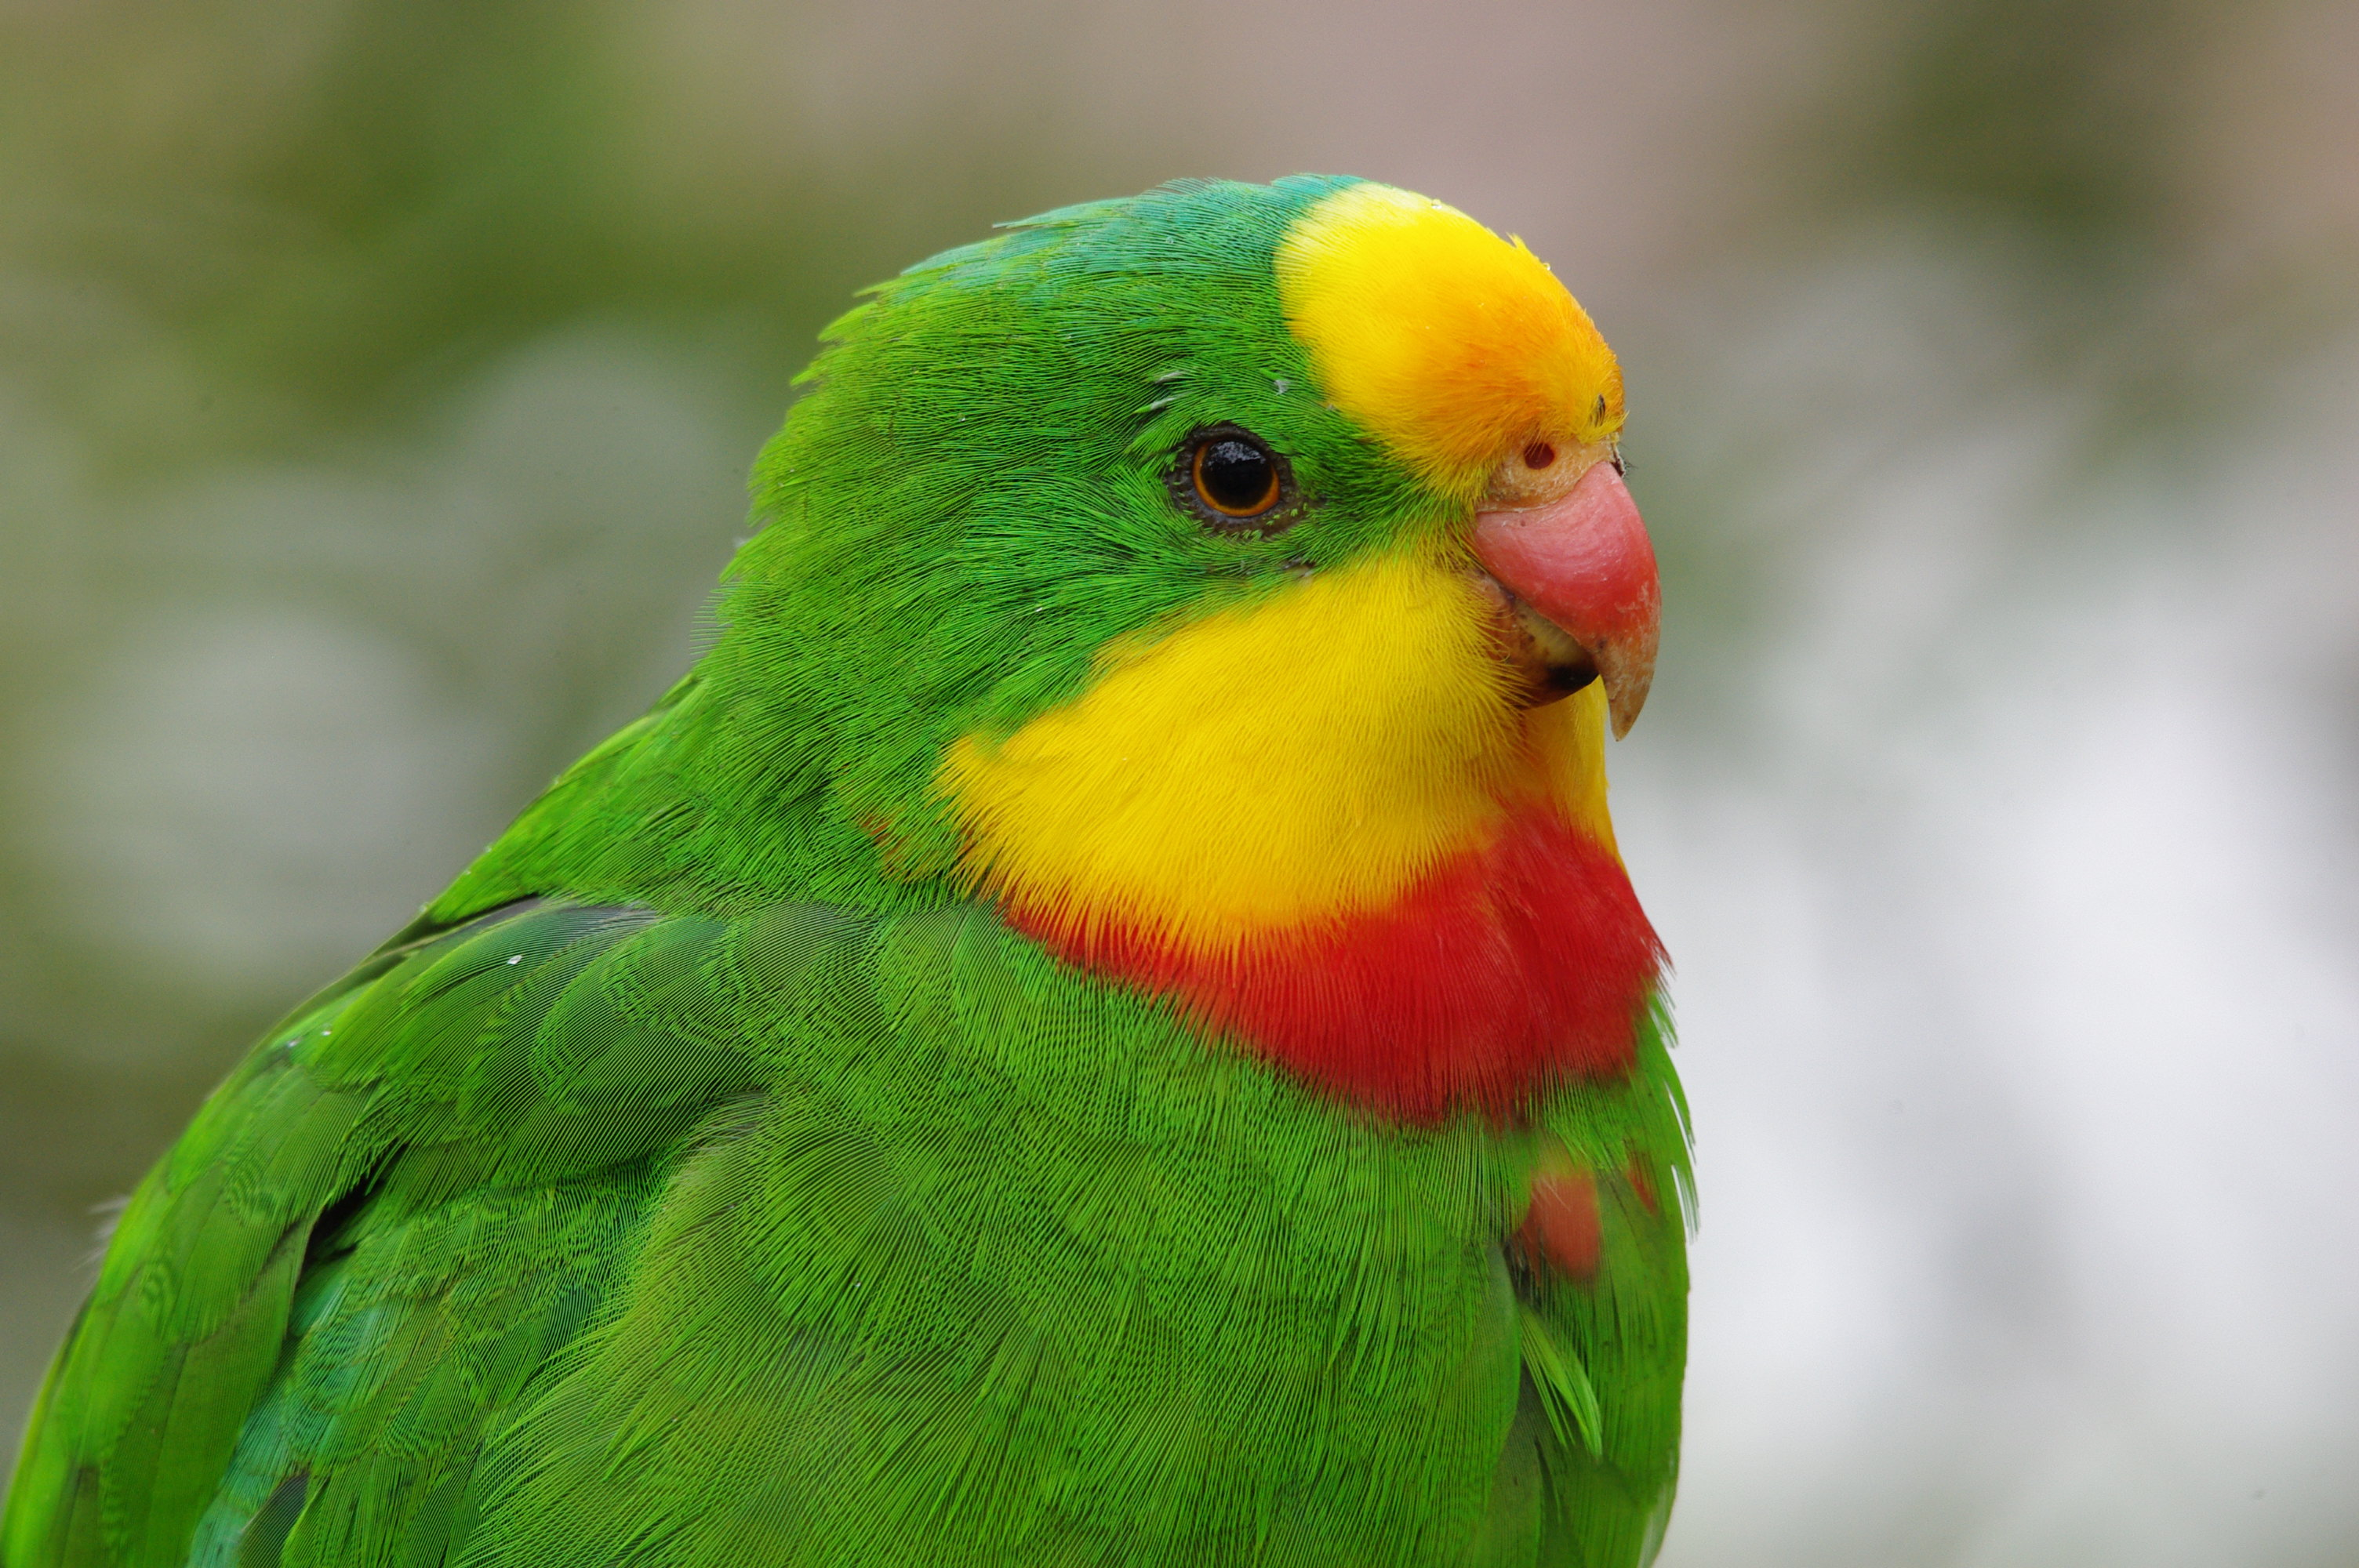 Keeping up with the superb parrot | Have your say on NSW